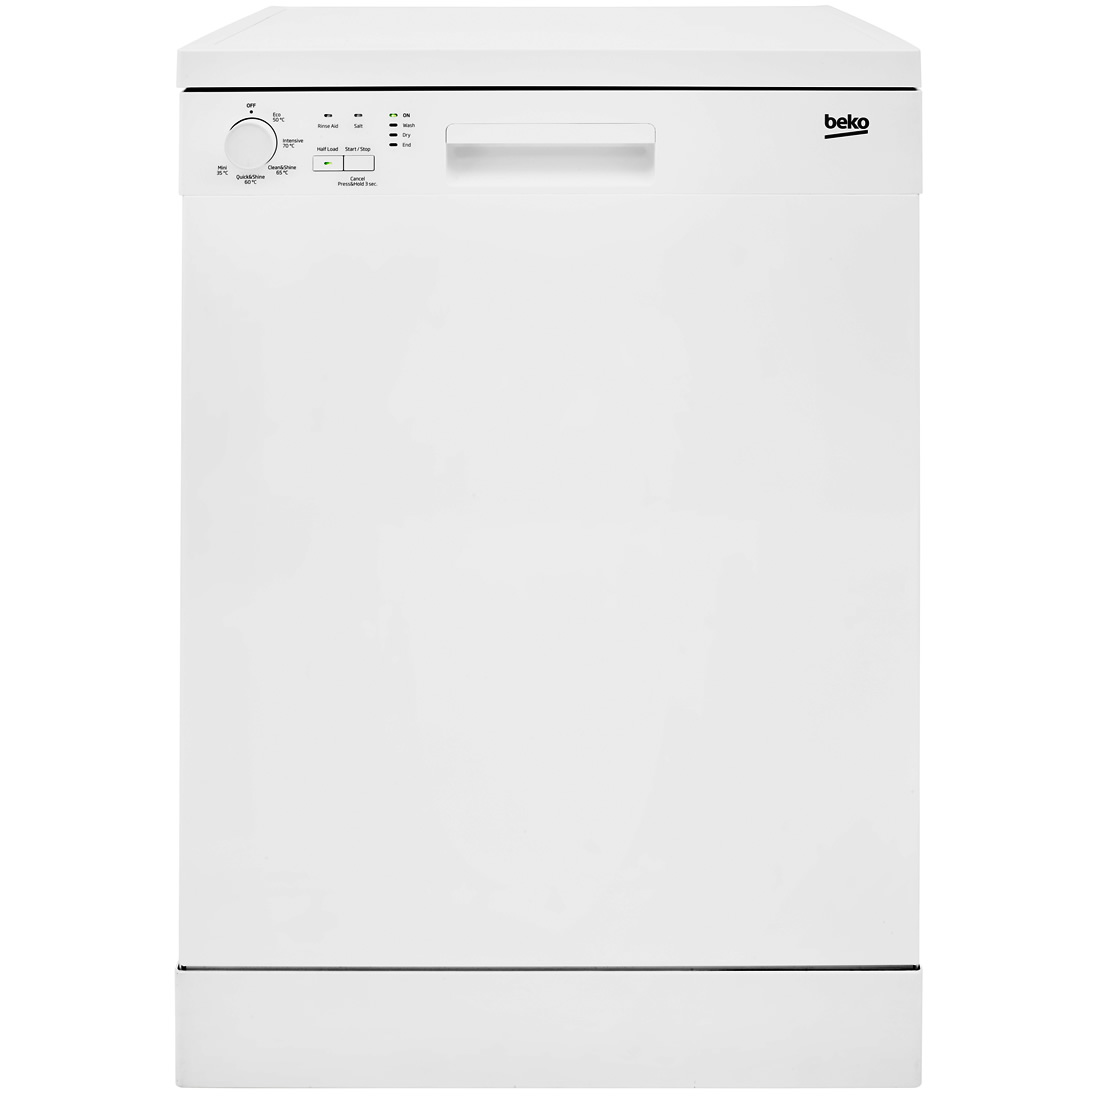 13-Place Dishwasher 5 Progs Class A+ White